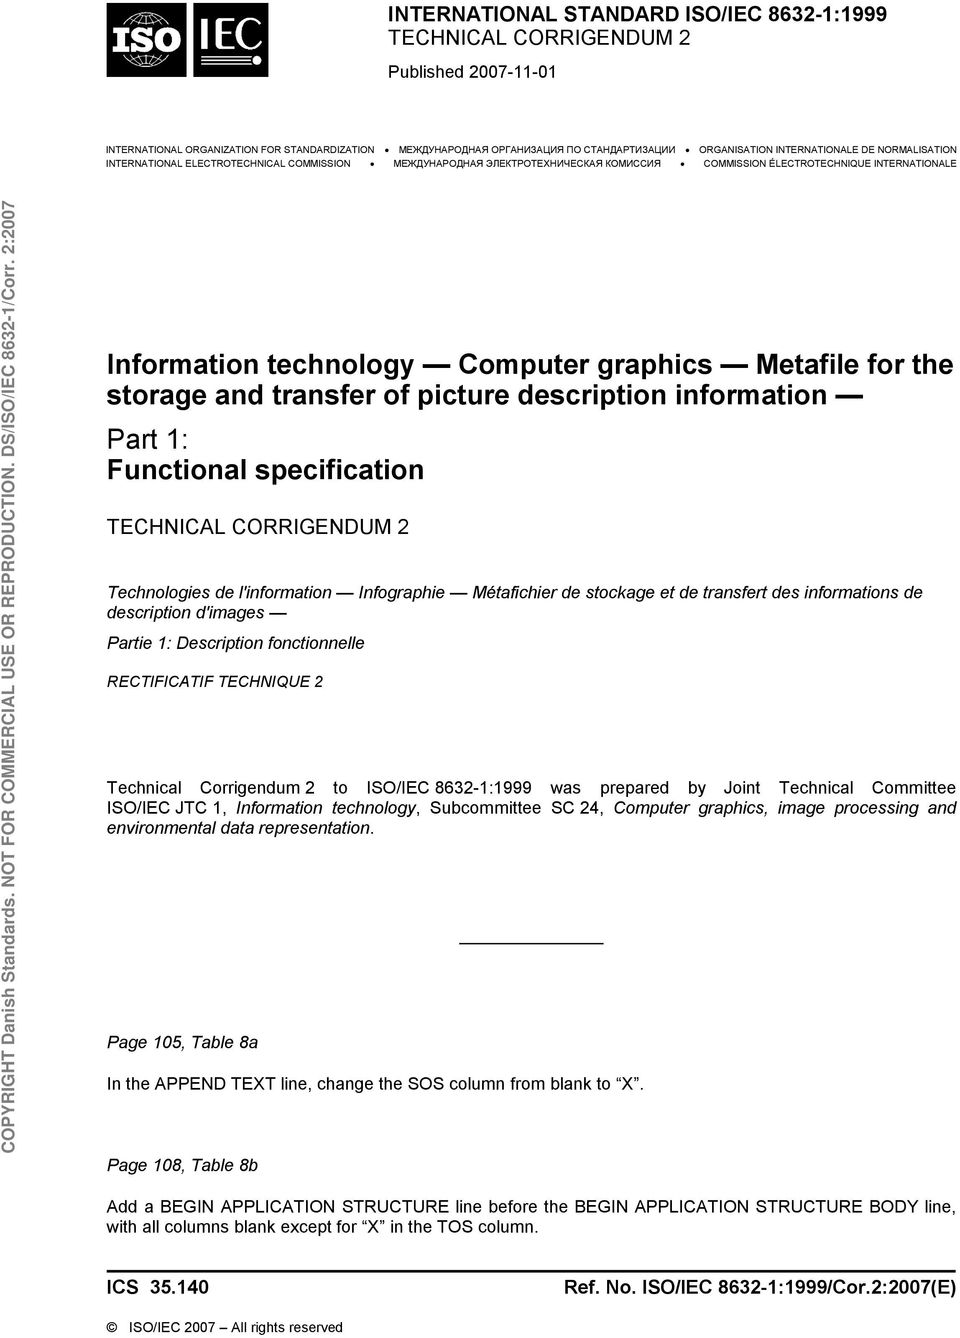 Metafile for the storage and transfer of picture description information Part 1: Functional specification TECHNICAL CORRIGENDUM 2 Technologies de l'information Infographie Métafichier de stockage et